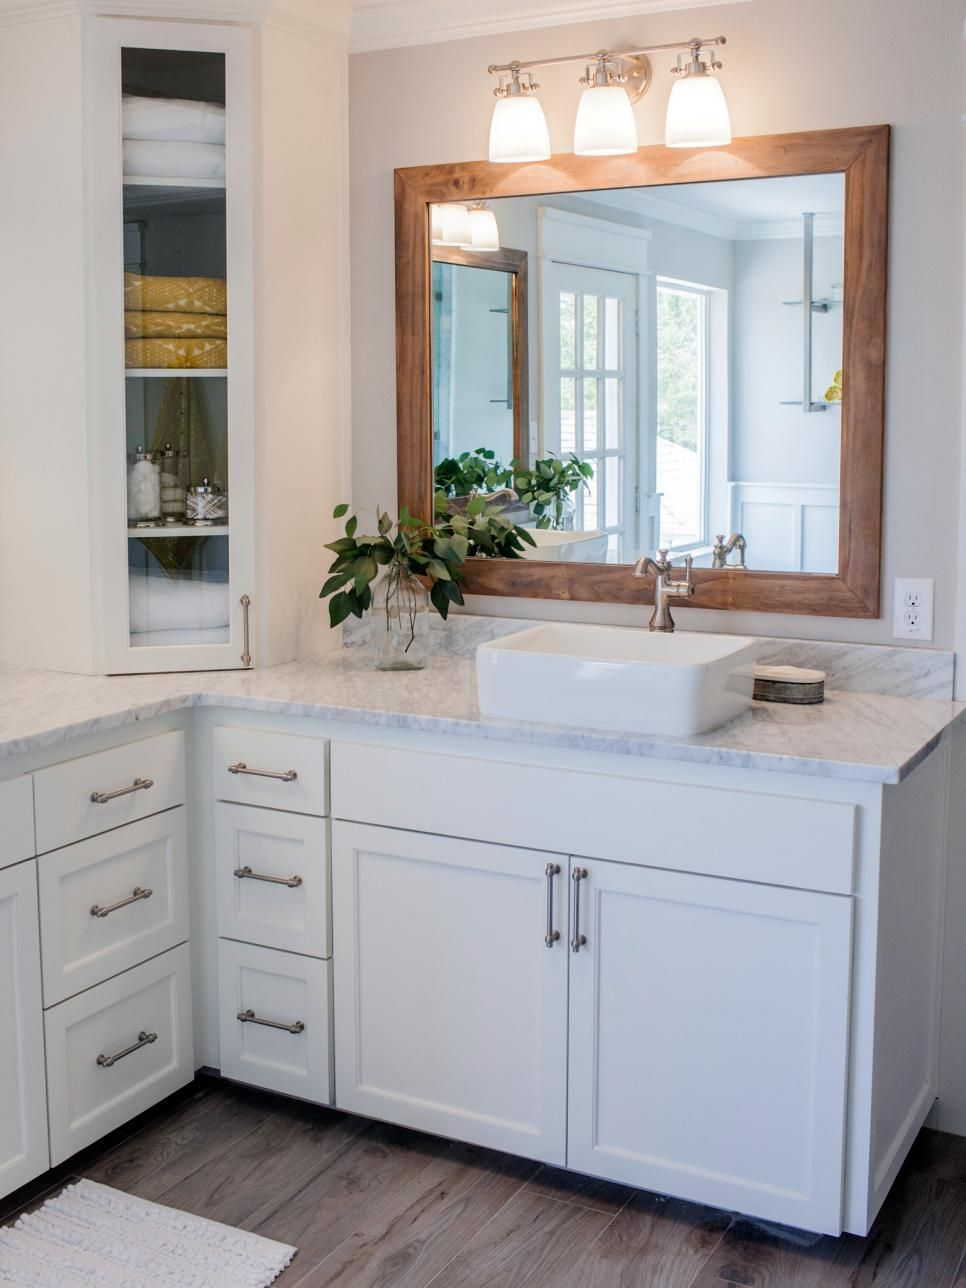 Fixer Upper: A Contemporary Update for a Family Sized House | HGTV's Fixer Upper With Chip and Joanna Gaines | HGTV